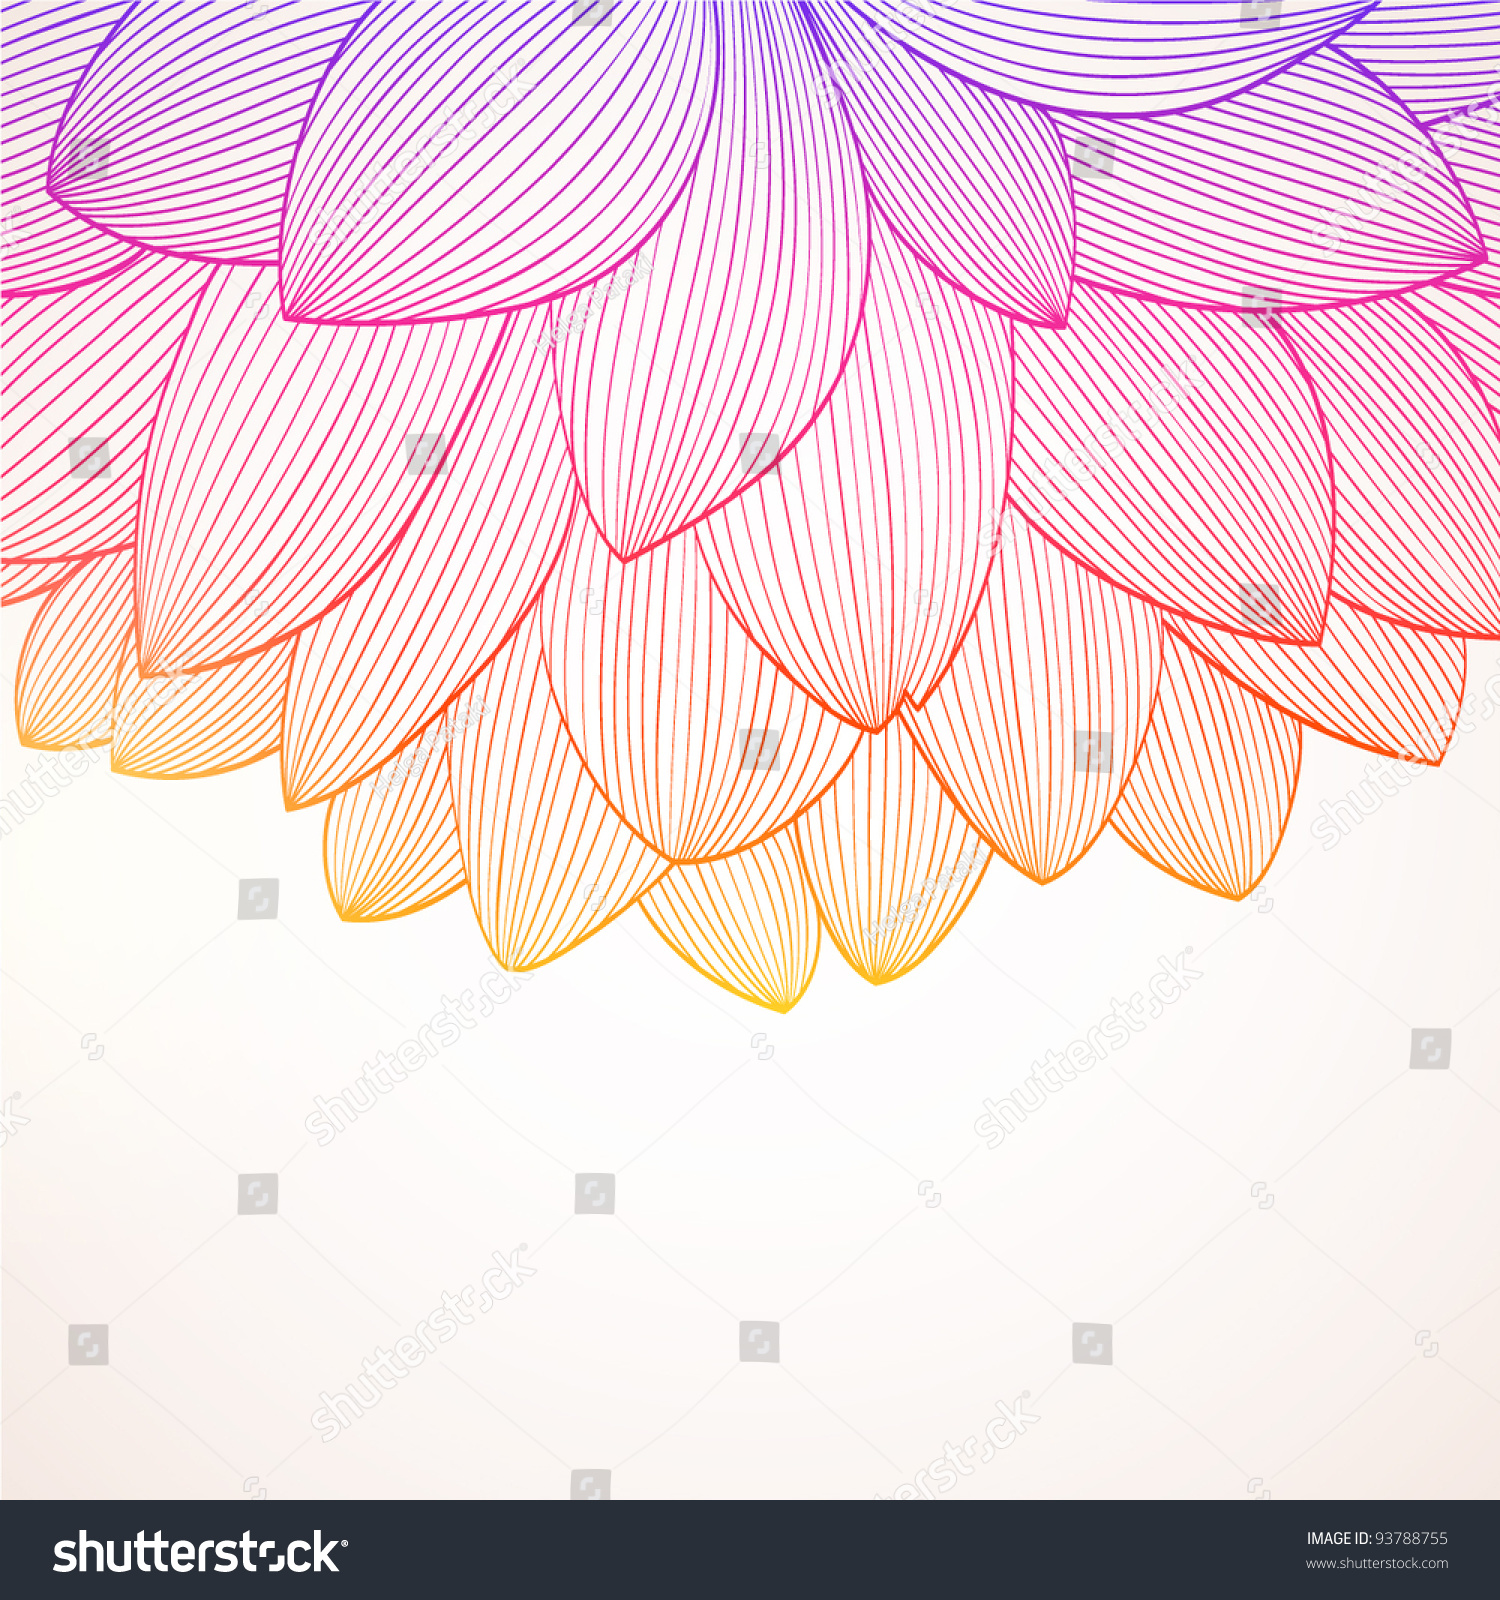 Abstract Flower Background With Decoration Elements For: Hand Drawing Abstract Floral Background Vector Stock